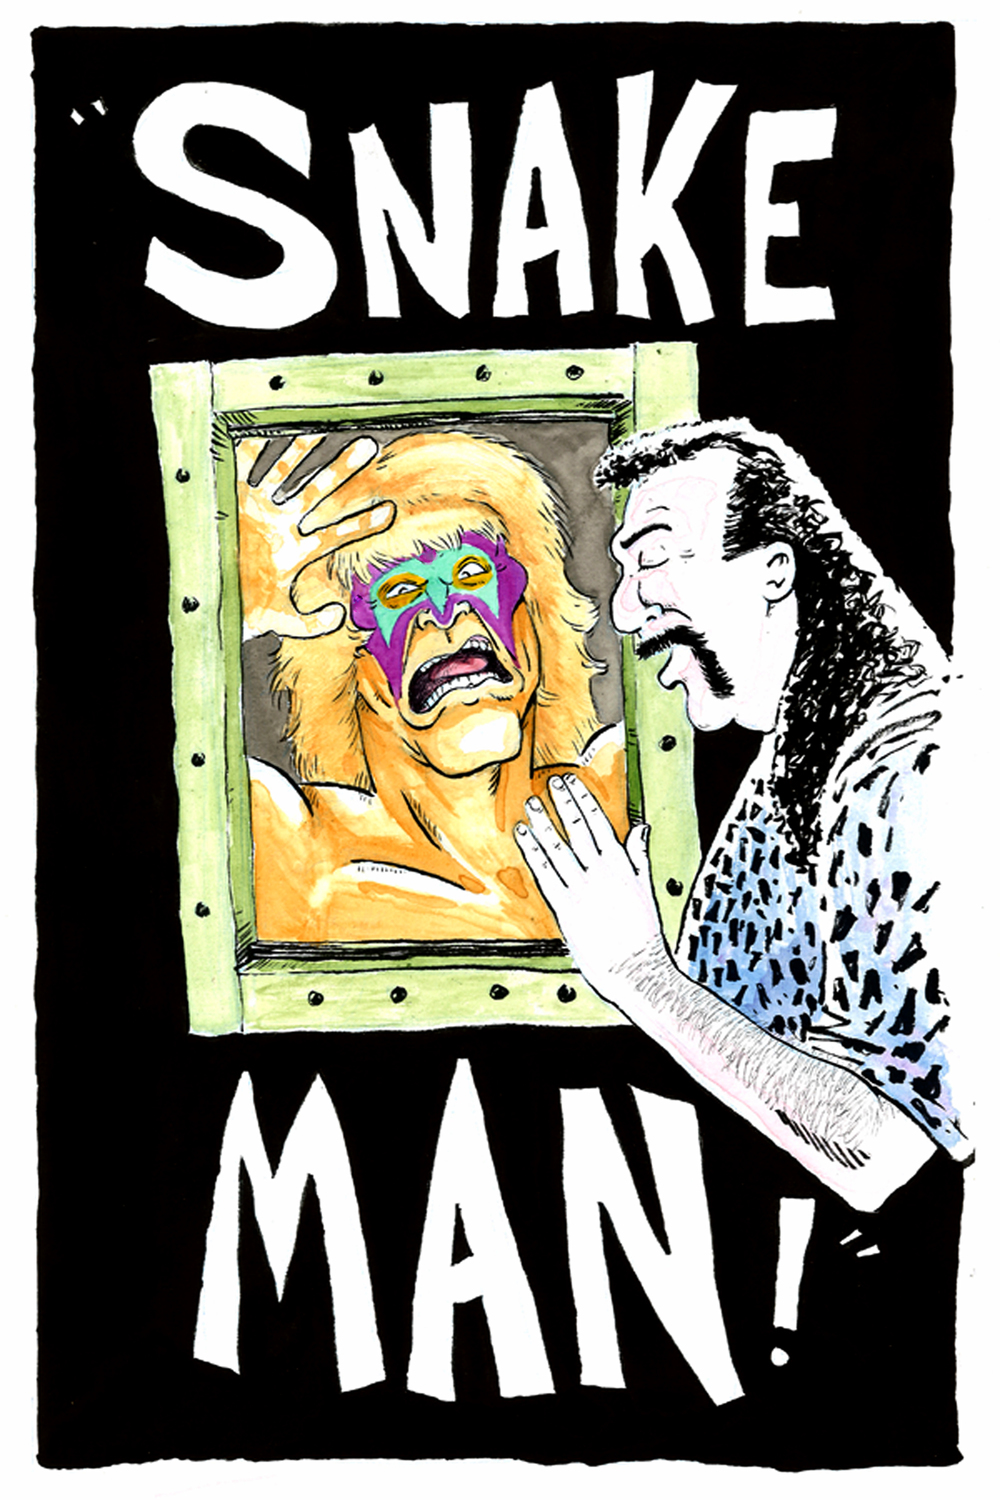 """SNAKE MAN!"" Micron pens, India ink, and water color on bristol board.   Copyright 2014 Bo McGee/ CheckThisOutBabe Media."